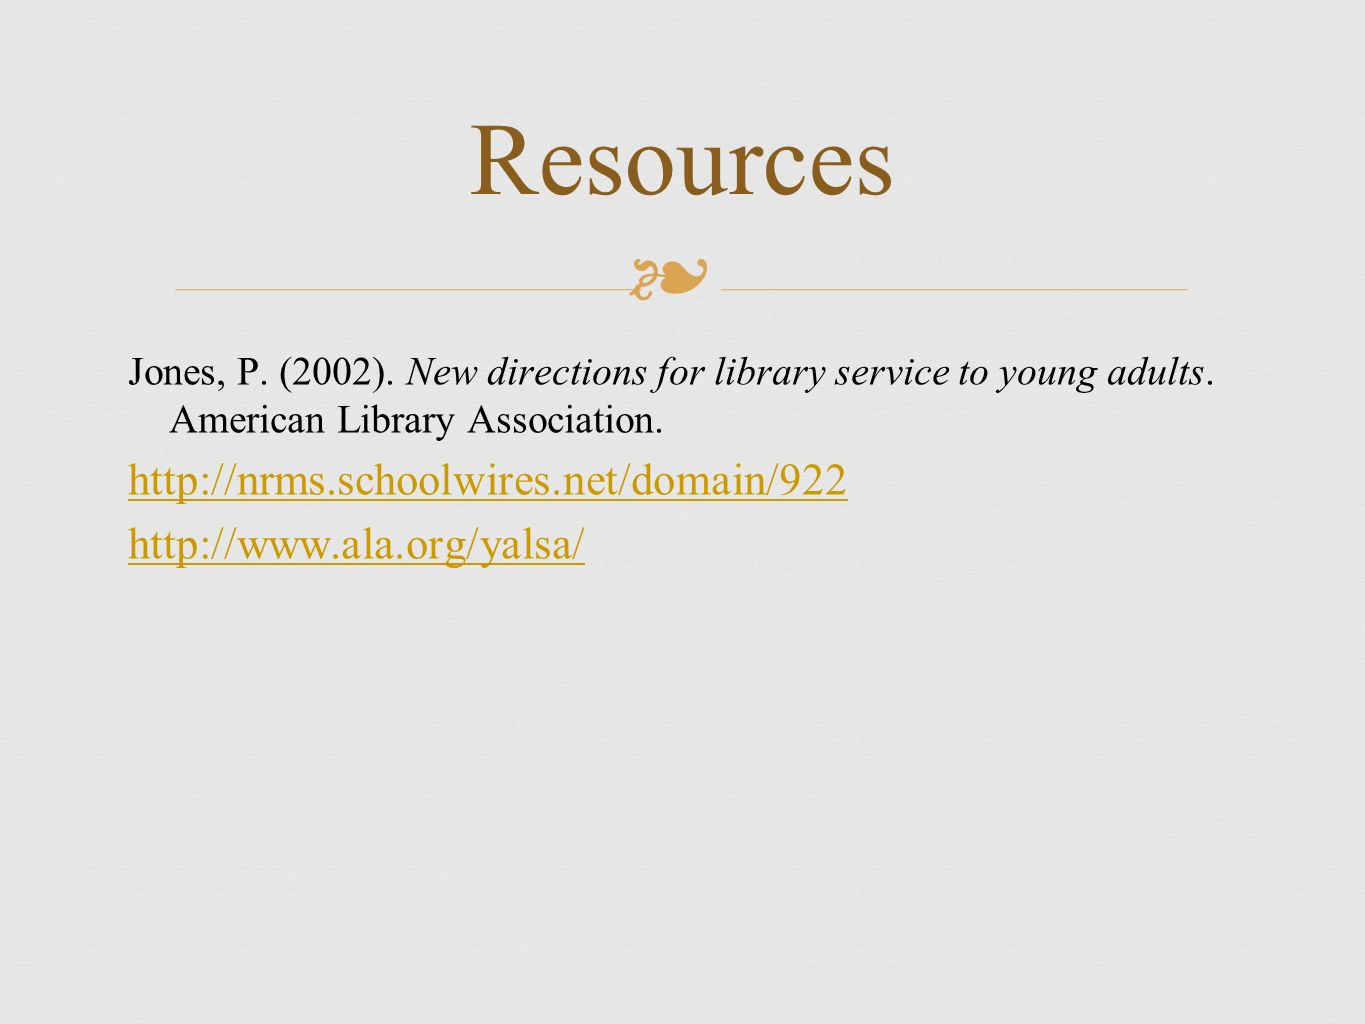 New directions for library service to young